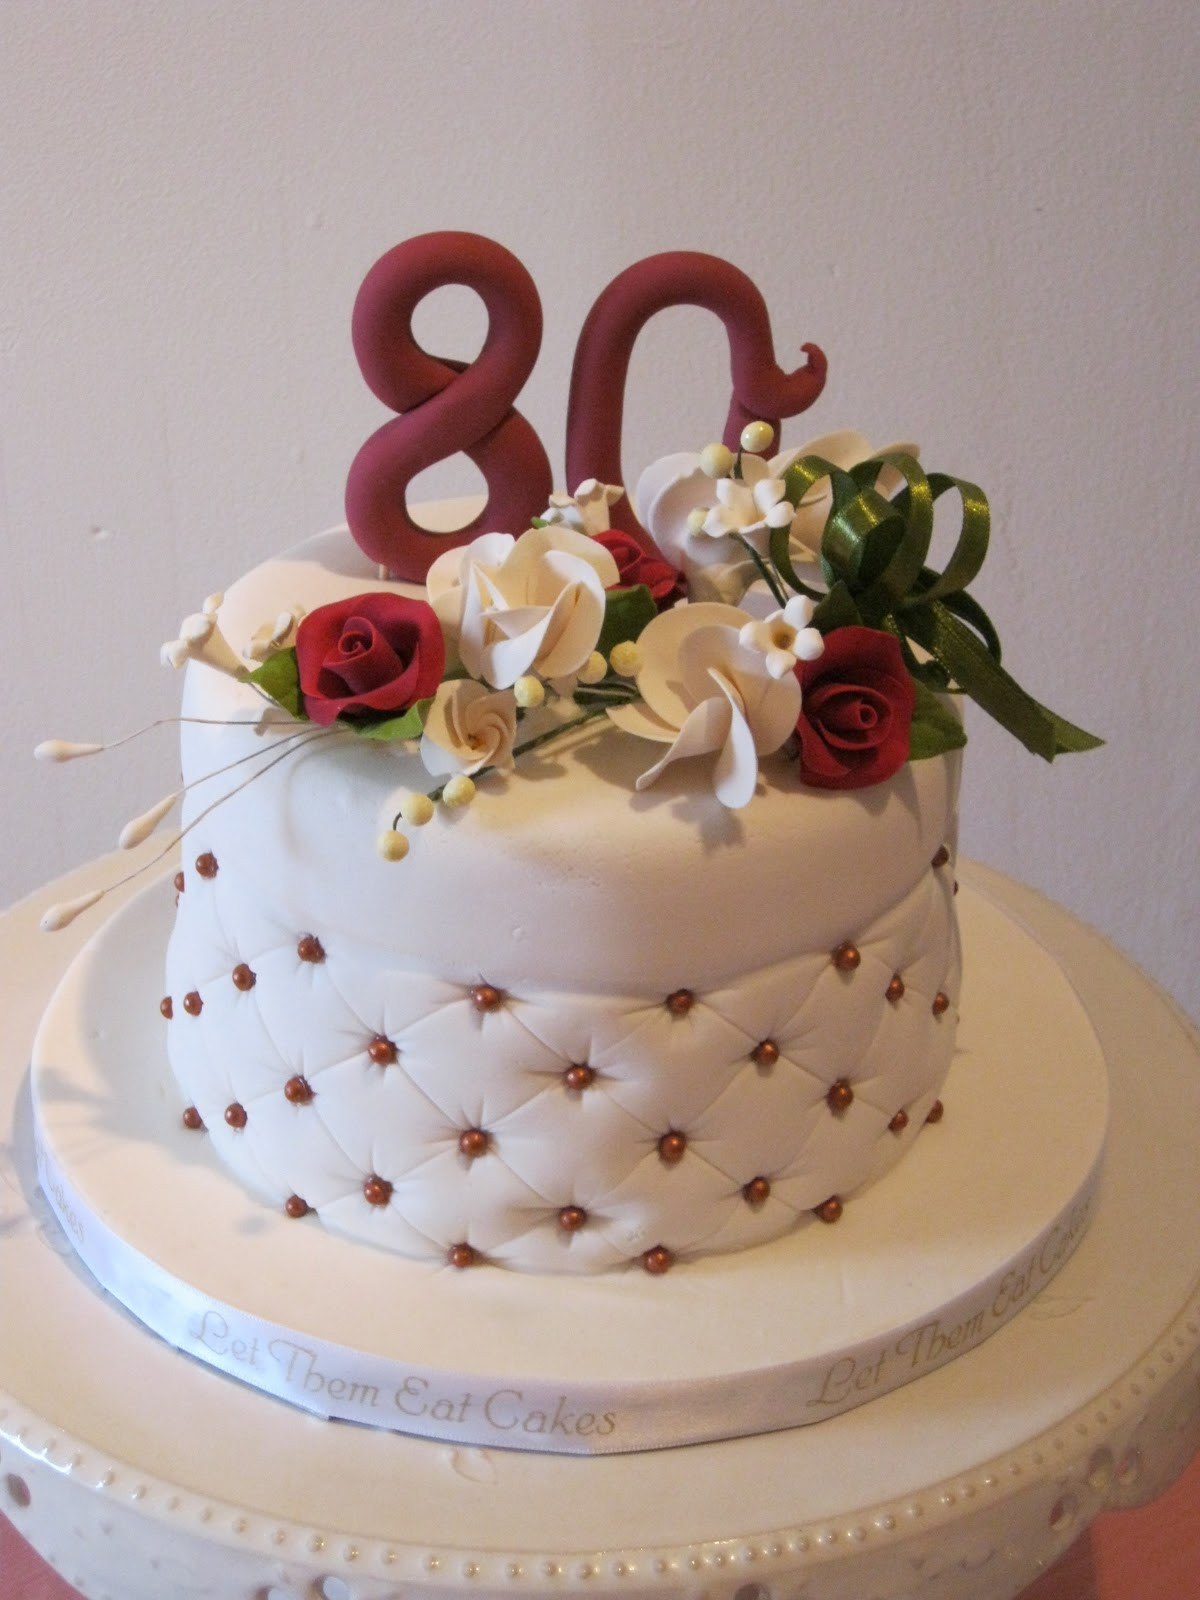 80 Birthday Cake  Let Them Eat Cakes 80th Birthday